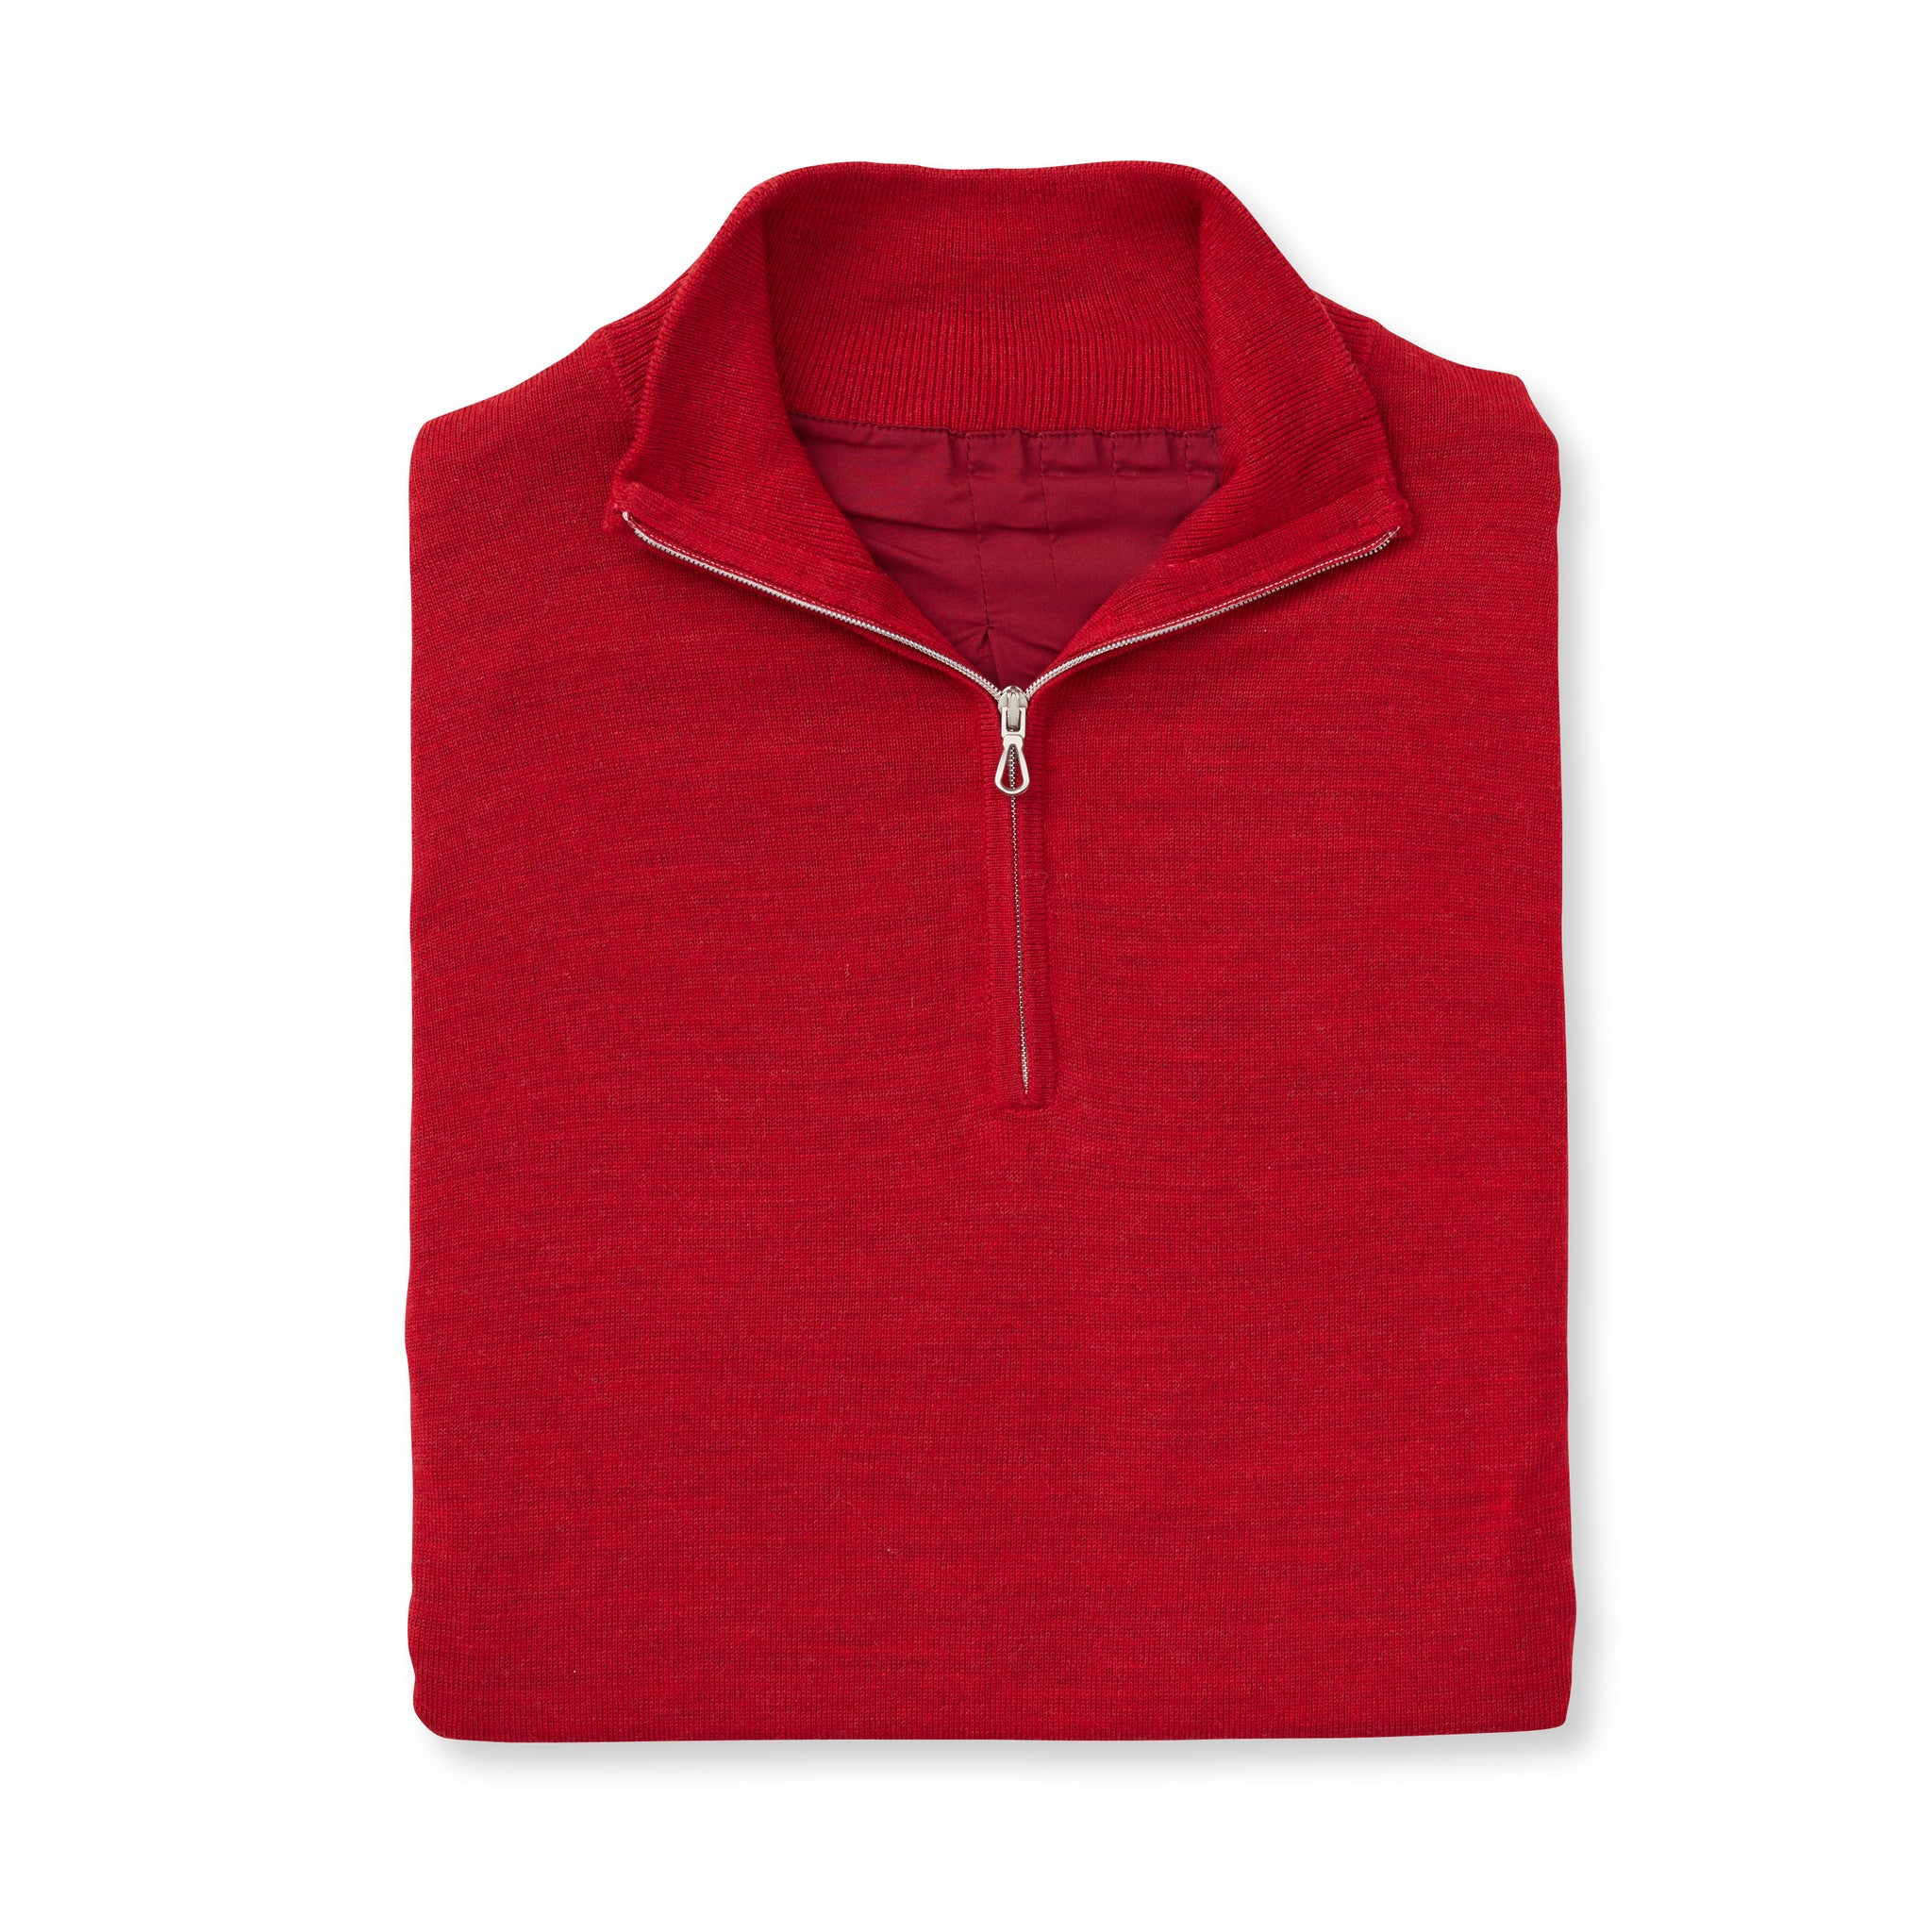 Womens MERINO Wind Block Lined Half-Zip Sweater - Crimson IS75708HLSW